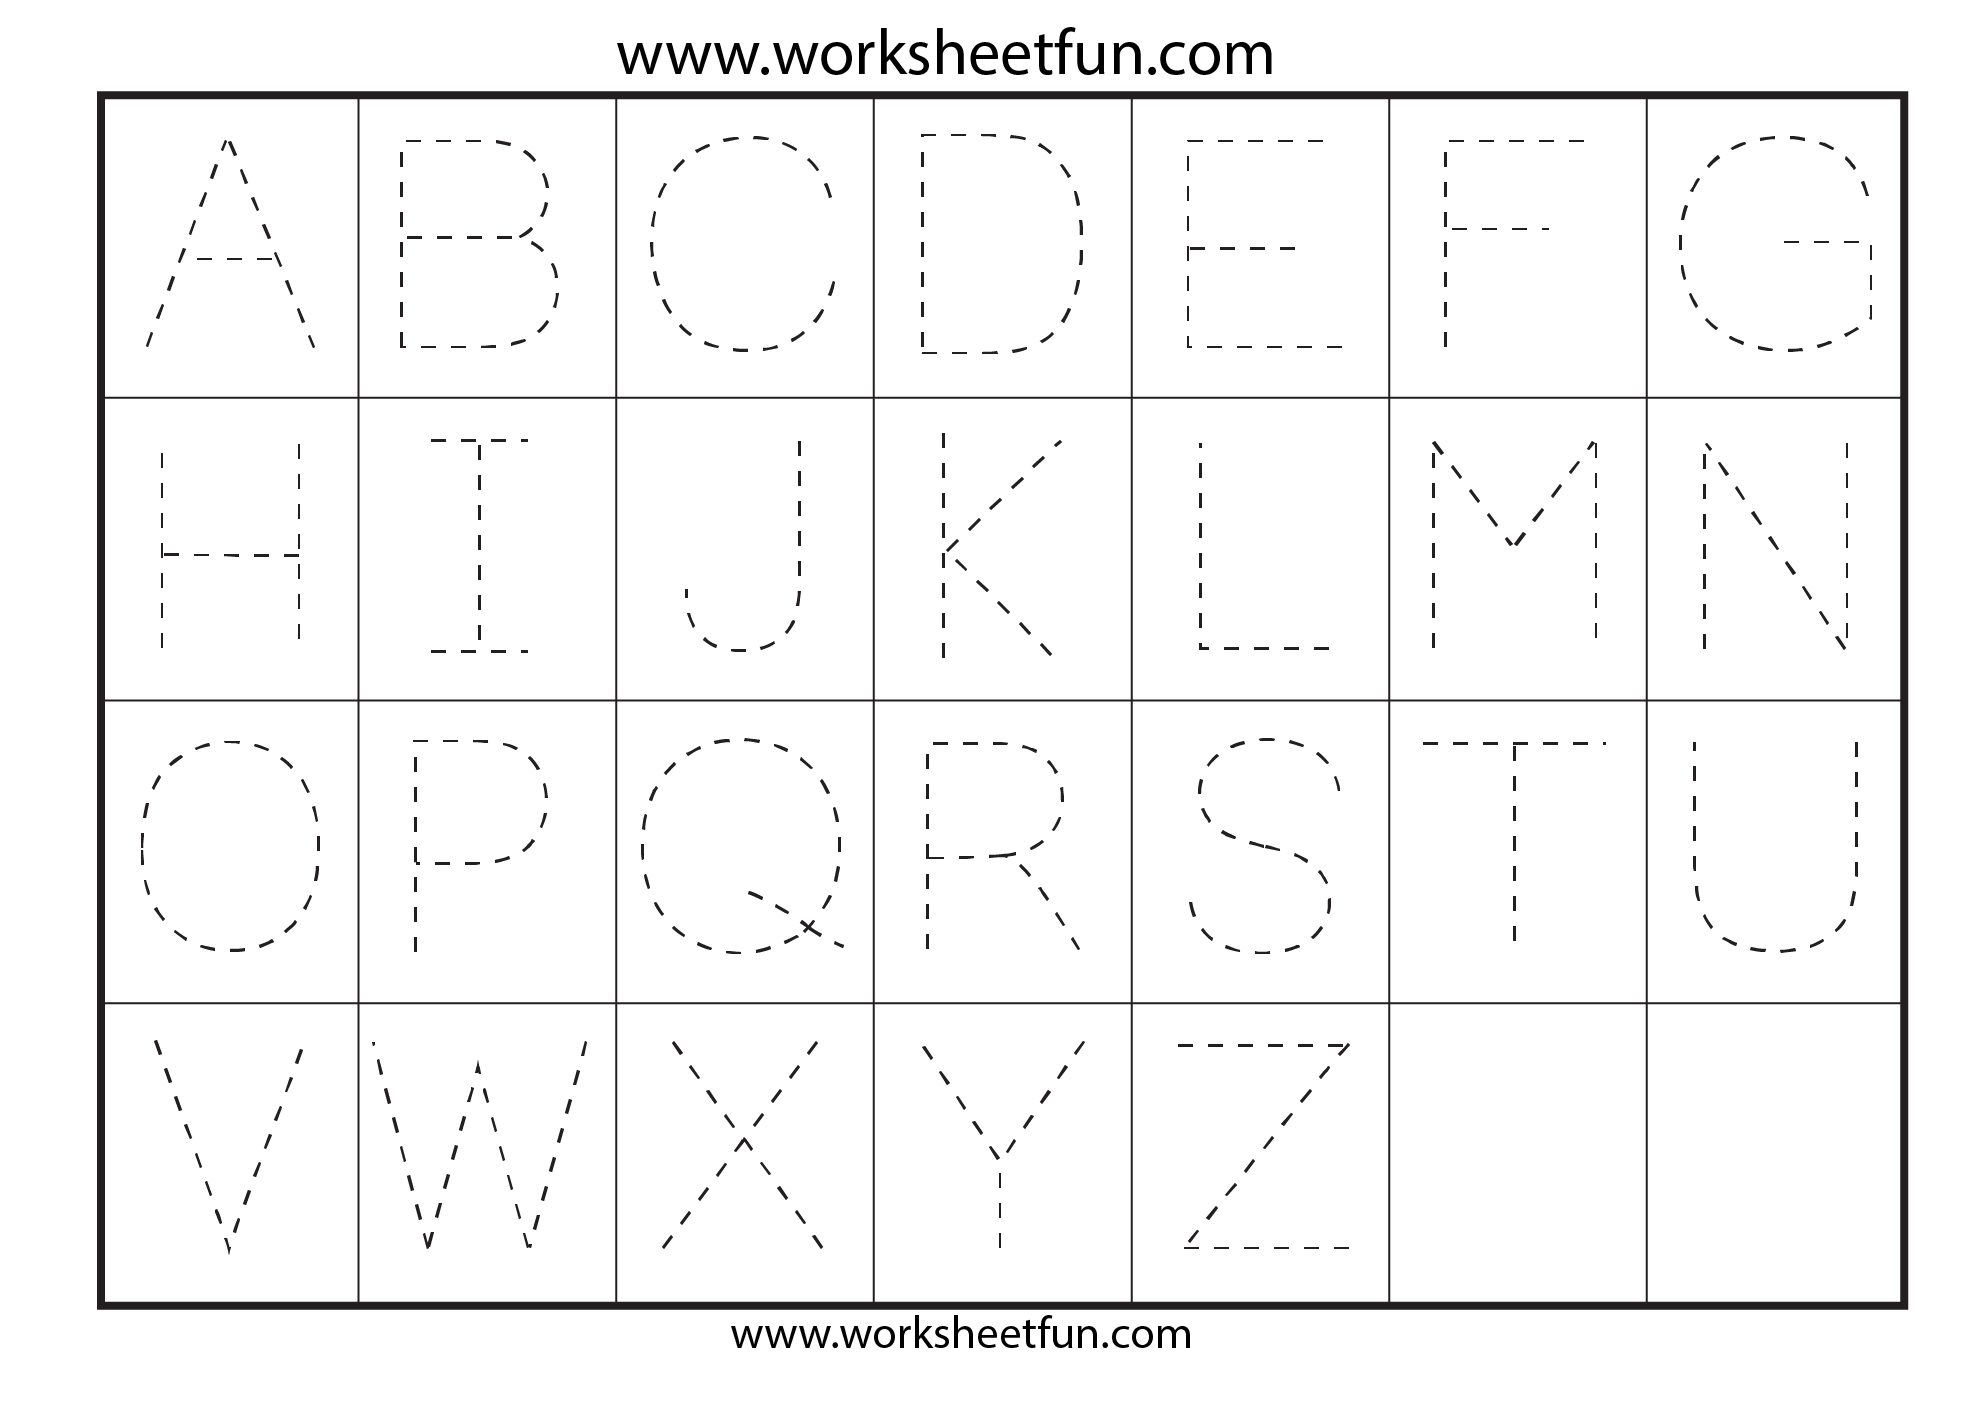 Printable Alphabet Letter Tracing Worksheets_33665 within Alphabet Tracing Hd